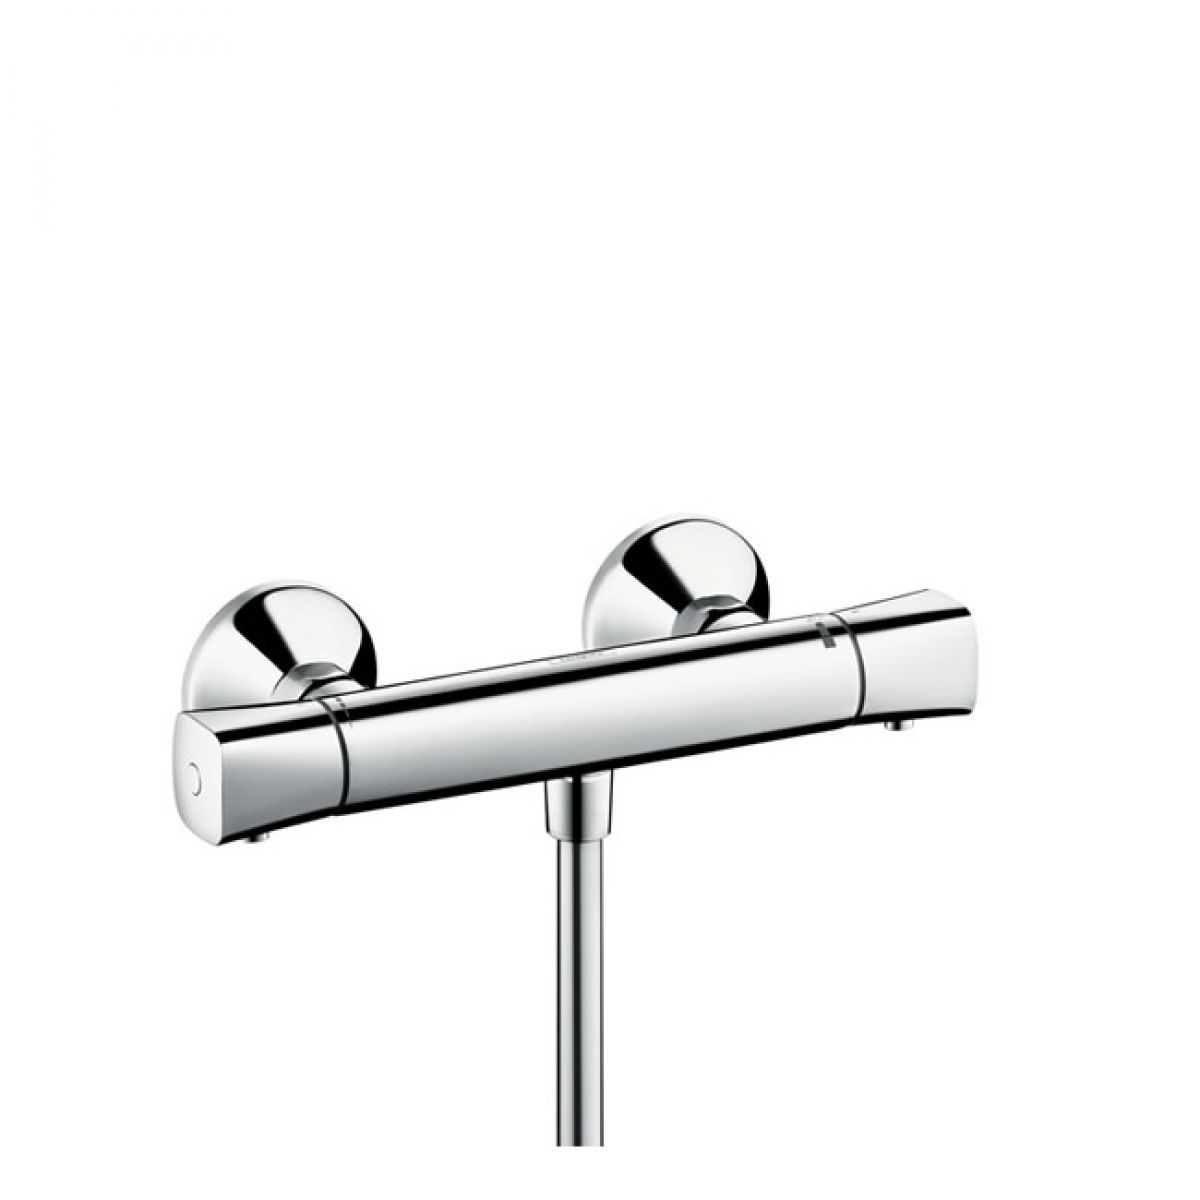 hansgrohe ecostat universal exposed shower mixer valve. Black Bedroom Furniture Sets. Home Design Ideas